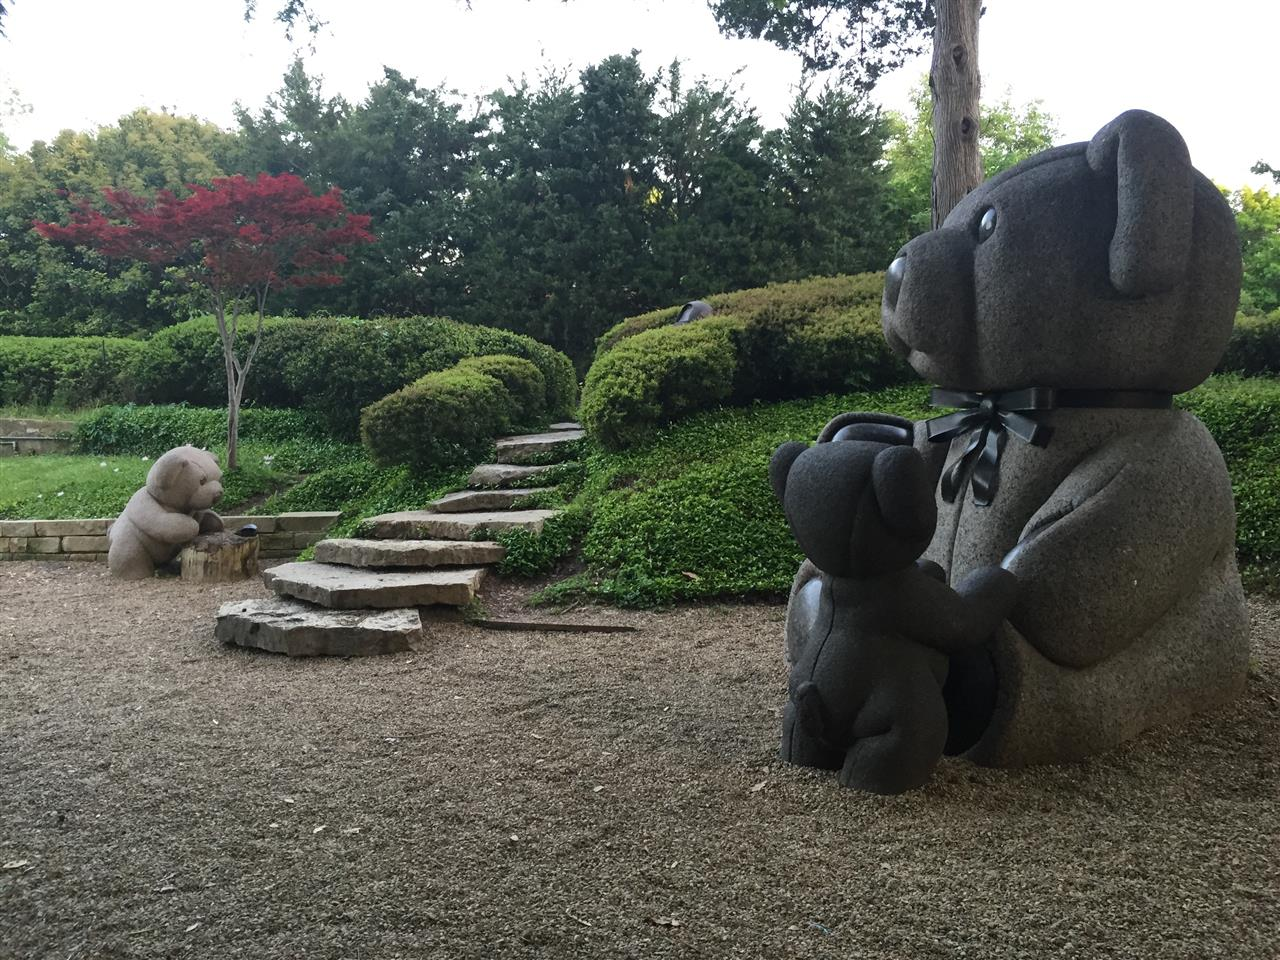 #Highland Park, #Turtle Creek, #Lakeside Park, Teddy Bear sculptures